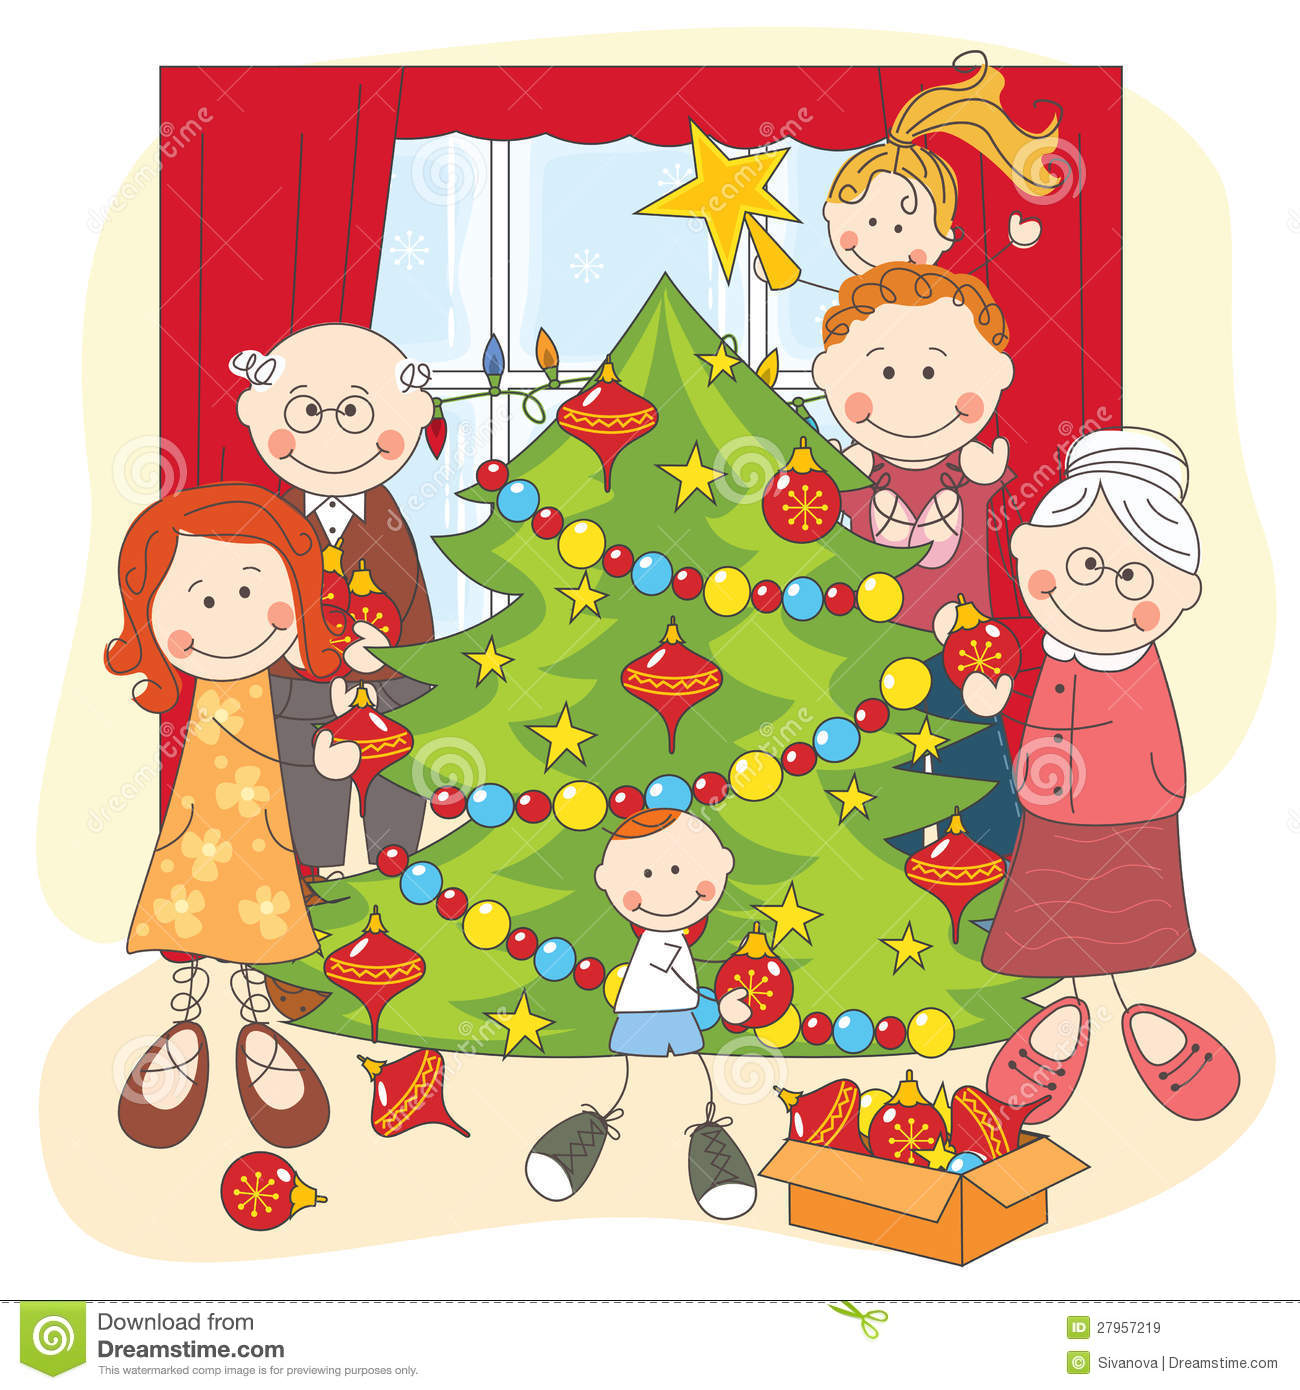 Download The Big Happy Family Dress Up A Christmas Tree Stock Vector